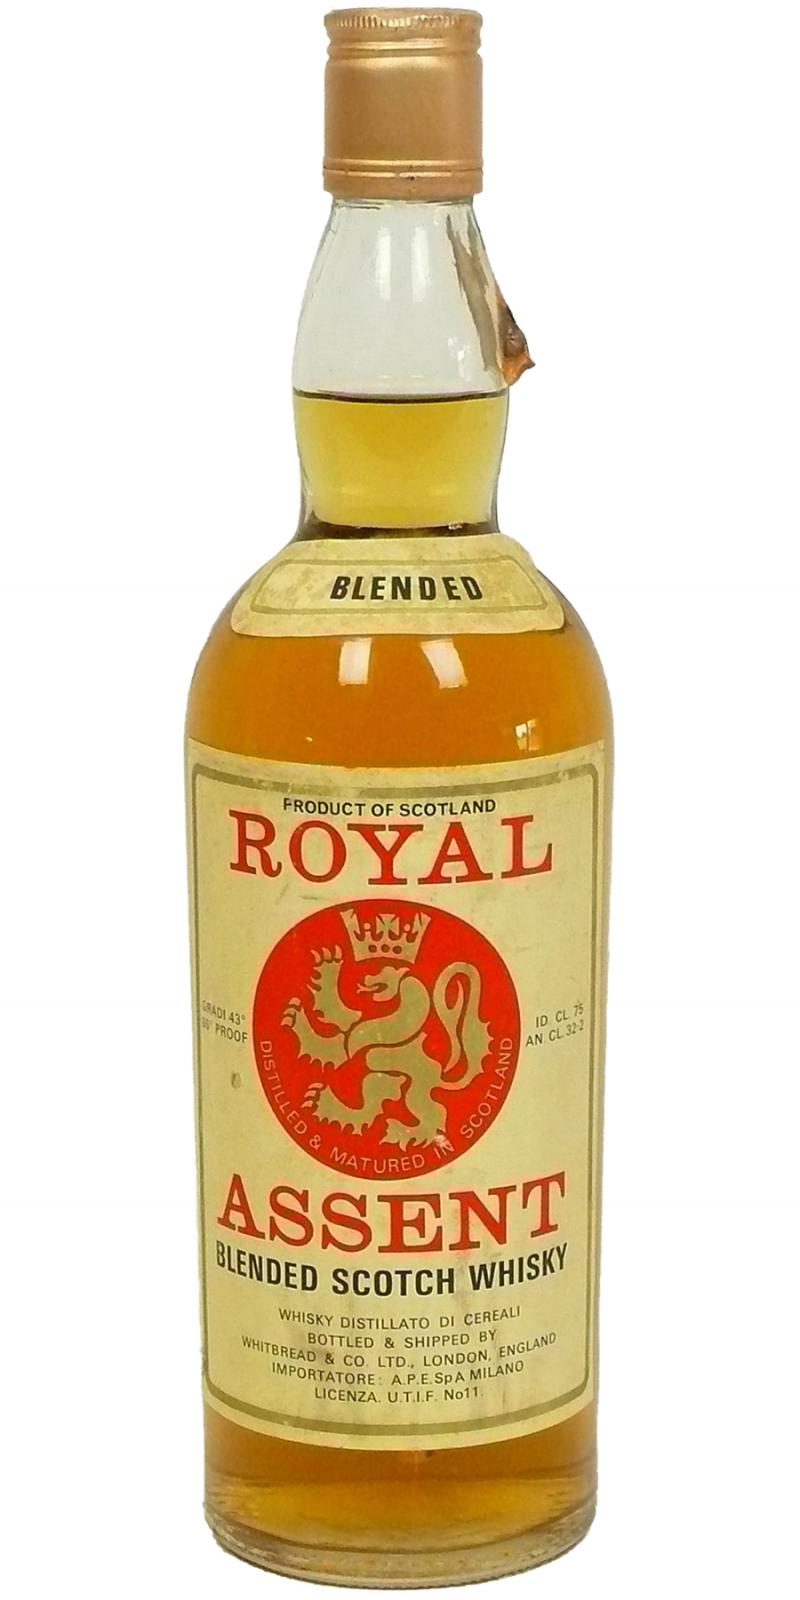 Royal Assent Blended Scotch Whisky